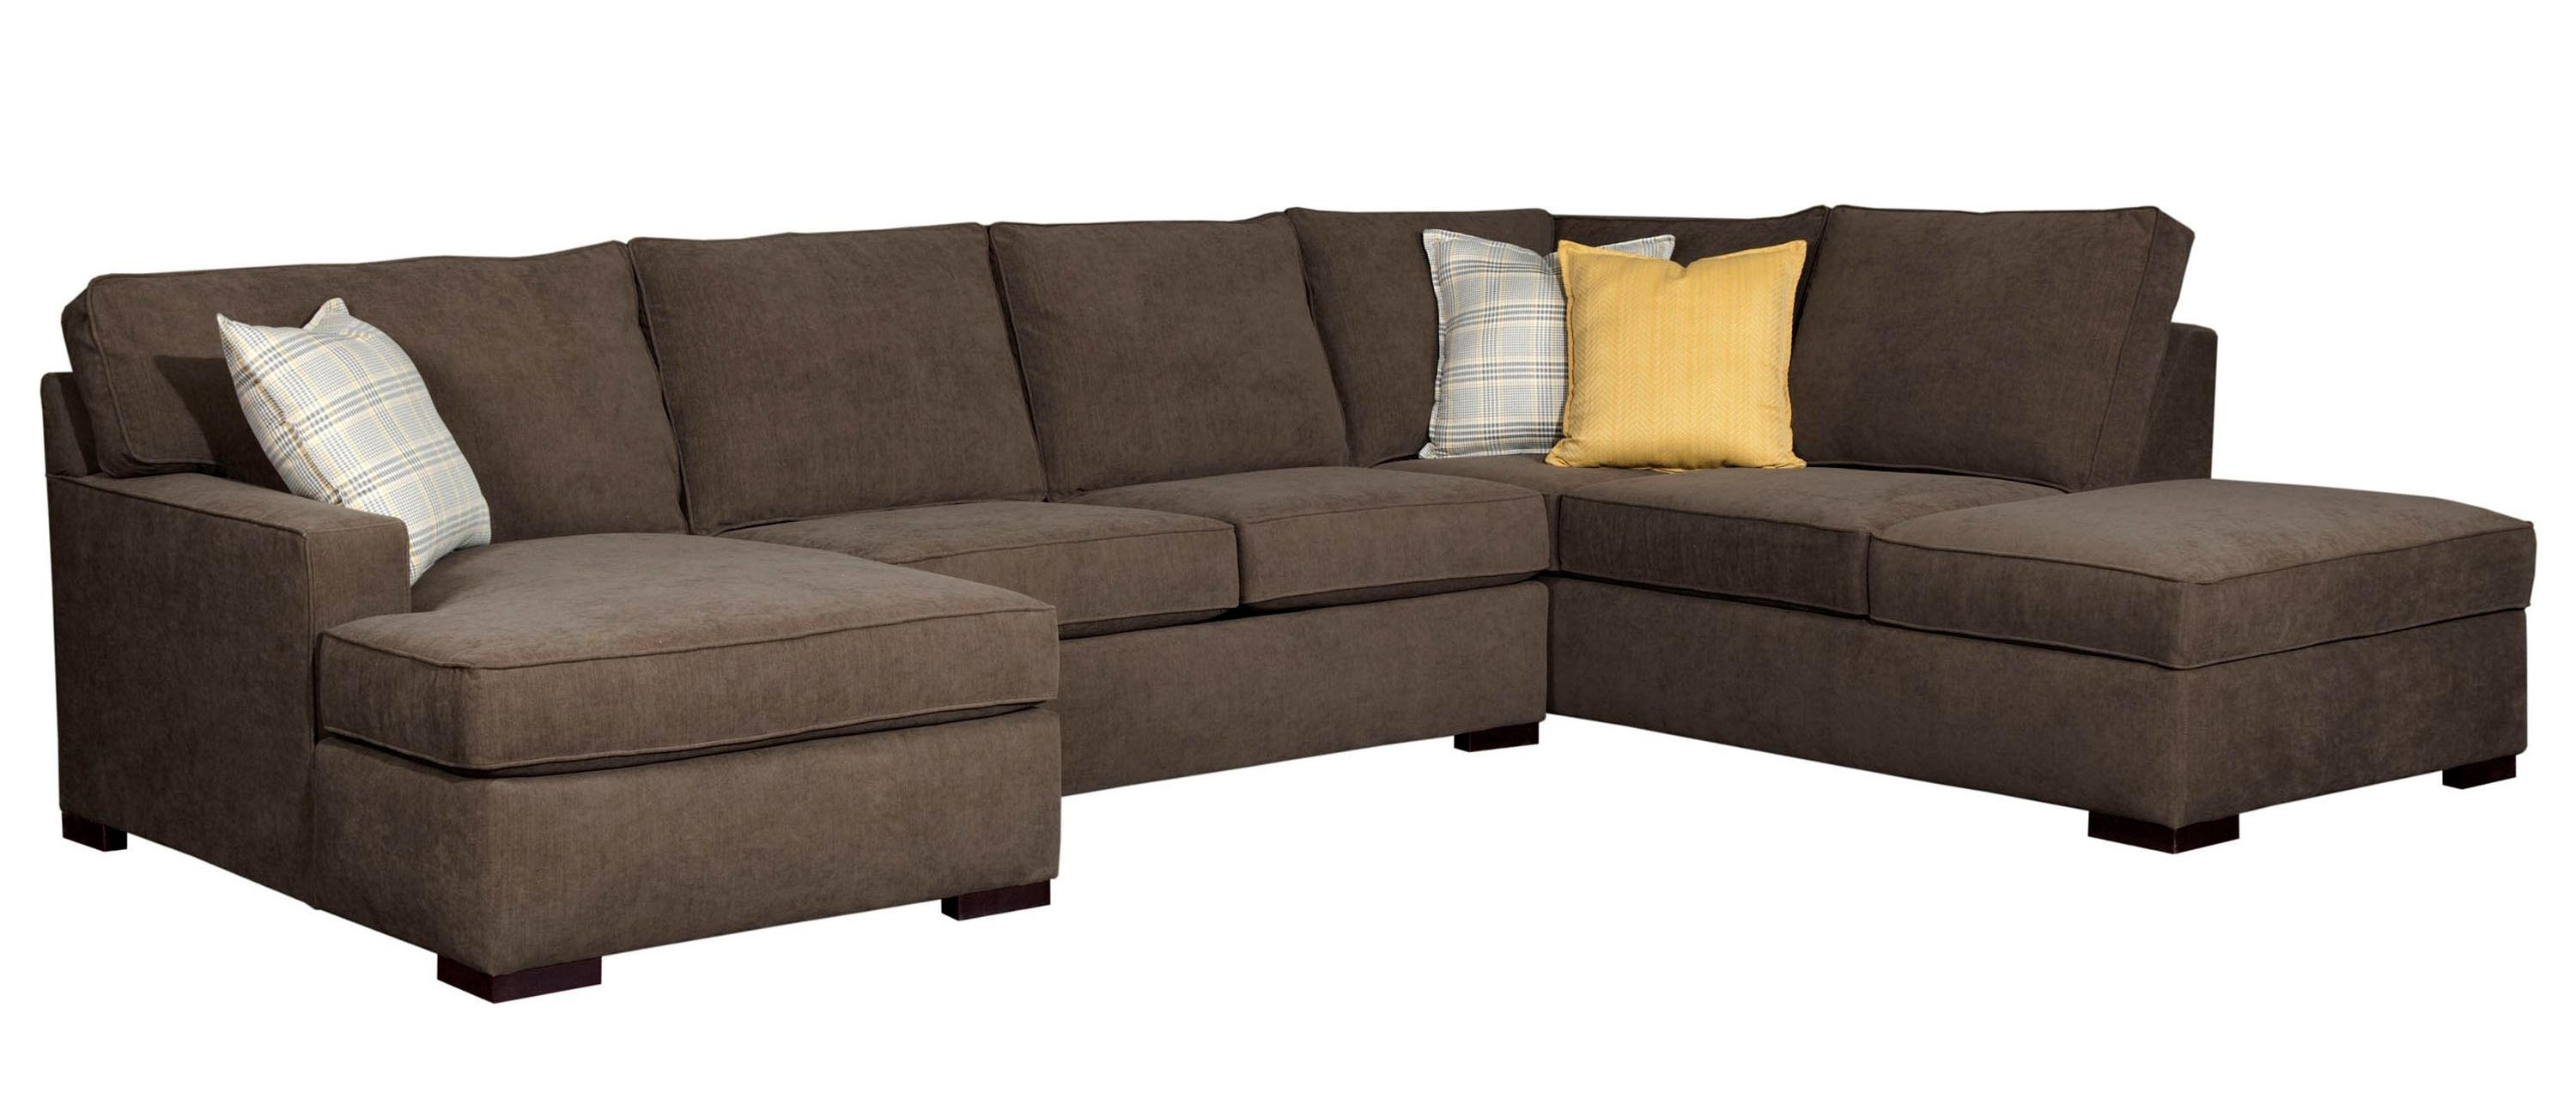 Raphael Three Piece Sectional Sofa Broyhill Furniture Home In Broyhill Sectional Sofas (Image 13 of 15)